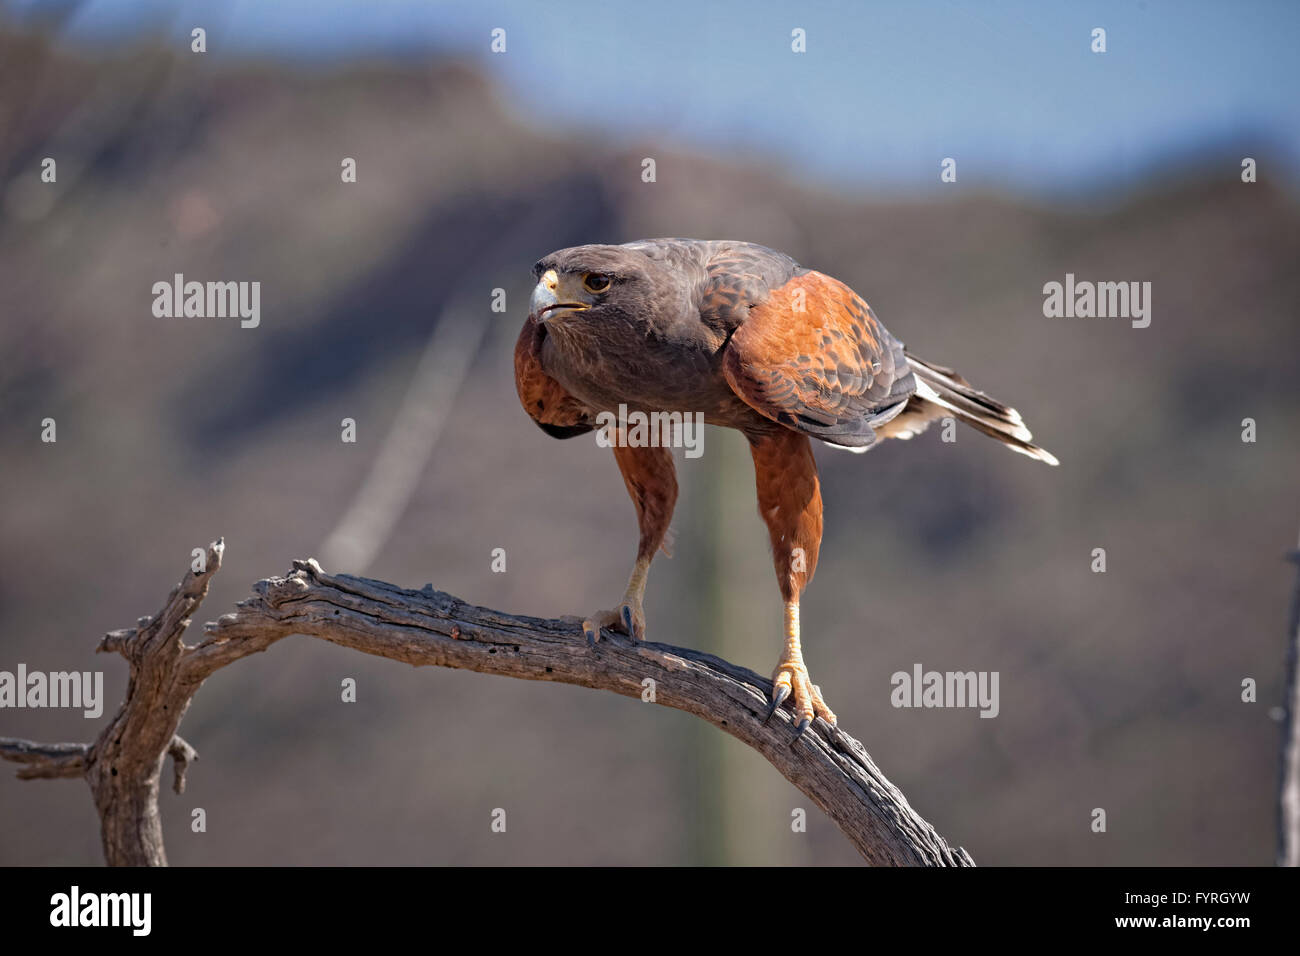 The Harris's Hawk, Parabuteo unicinctus, is formerly known as the Bay-Winged Hawk or Dusky Hawk seen in the - Stock Image